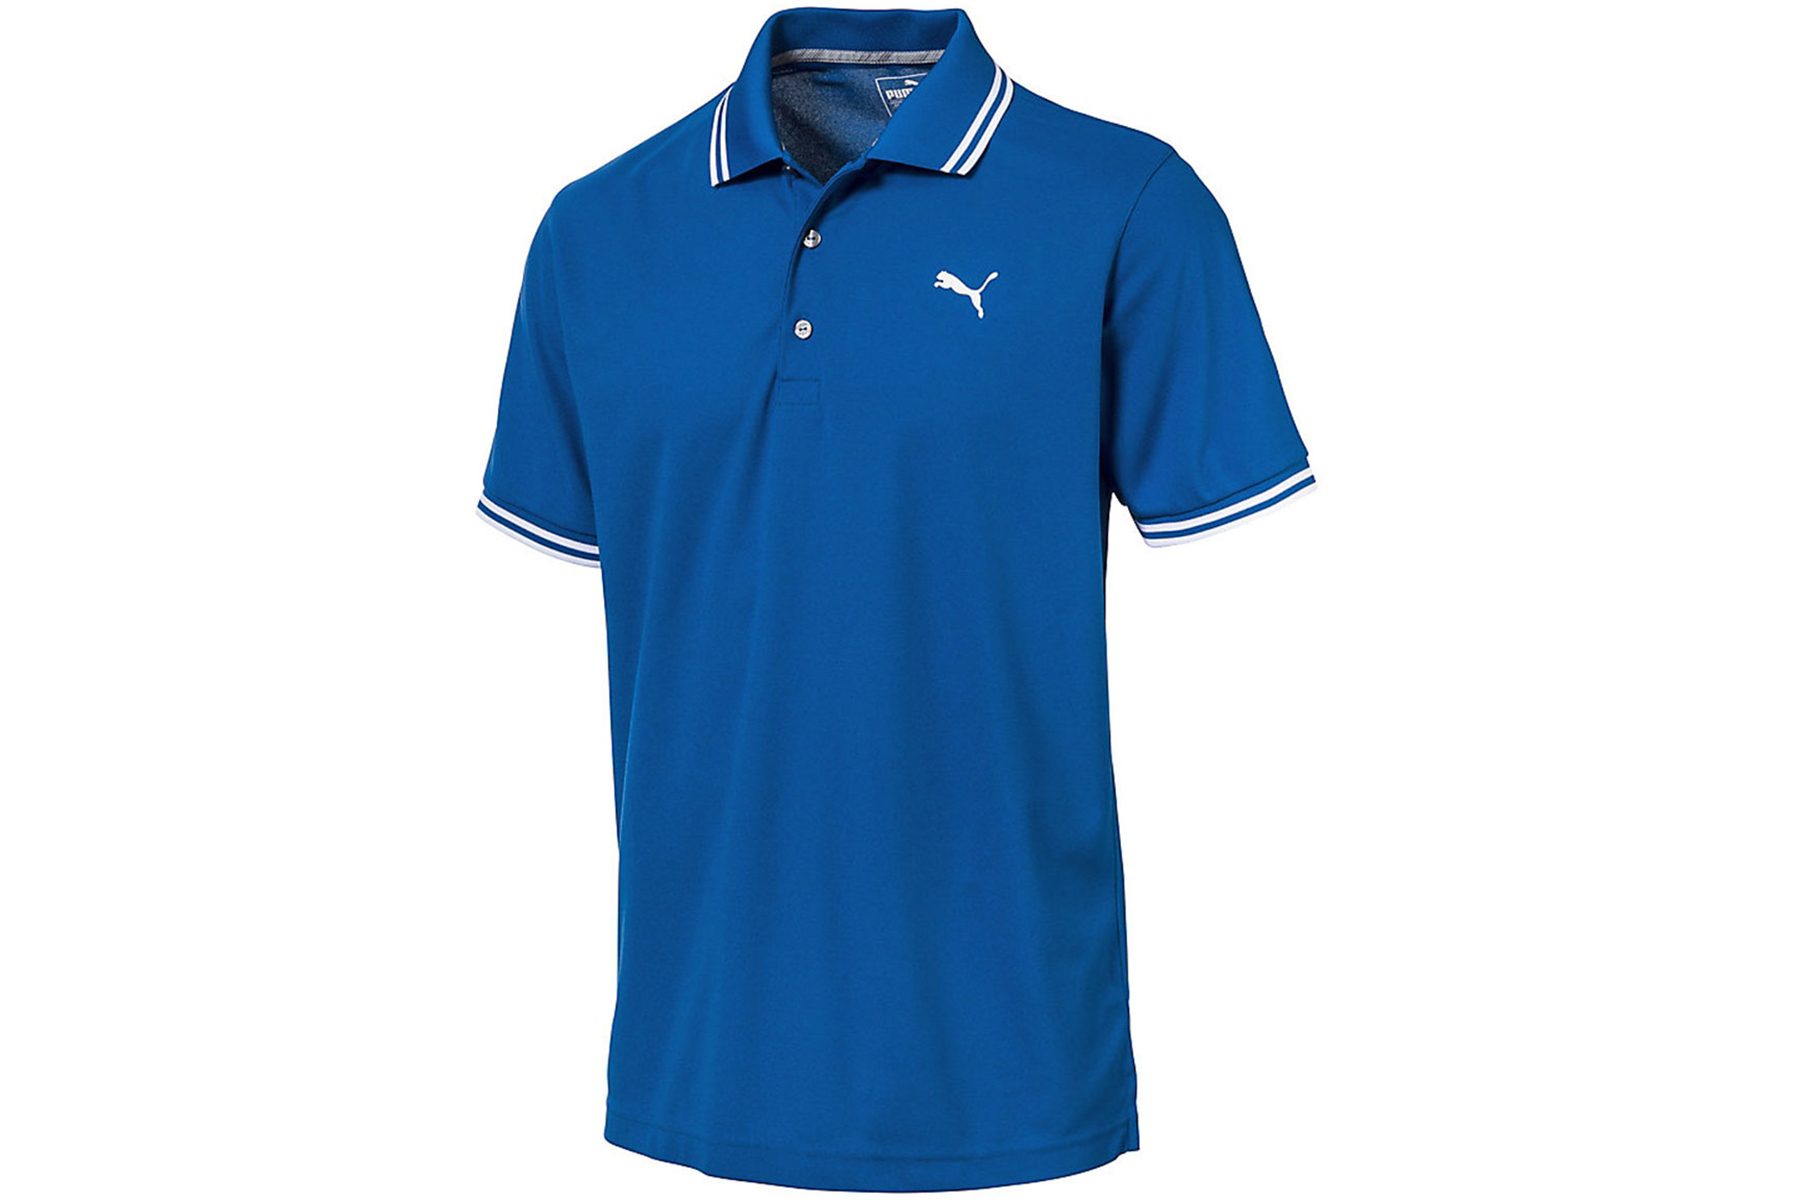 Puma golf pounce pique polo shirt from american golf for Personalised golf shirts uk